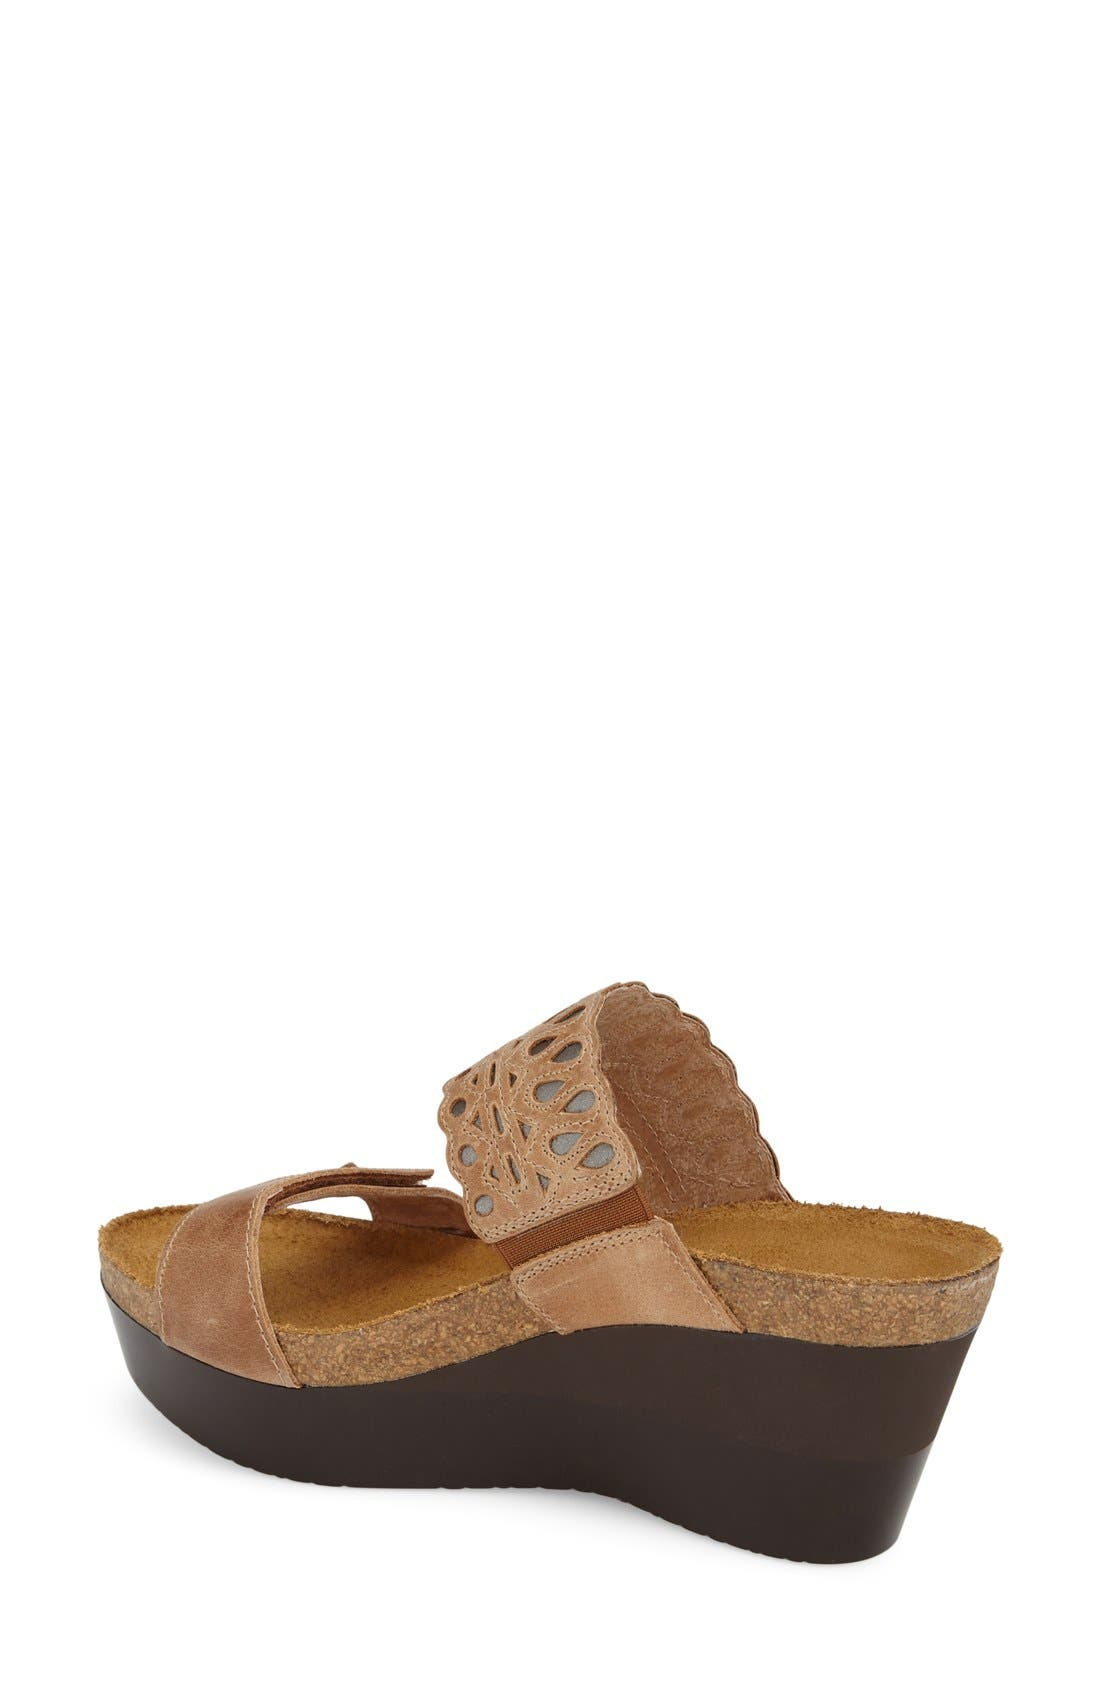 'Rise' Platform Wedge Sandal,                             Alternate thumbnail 2, color,                             LATTE BROWN LEATHER